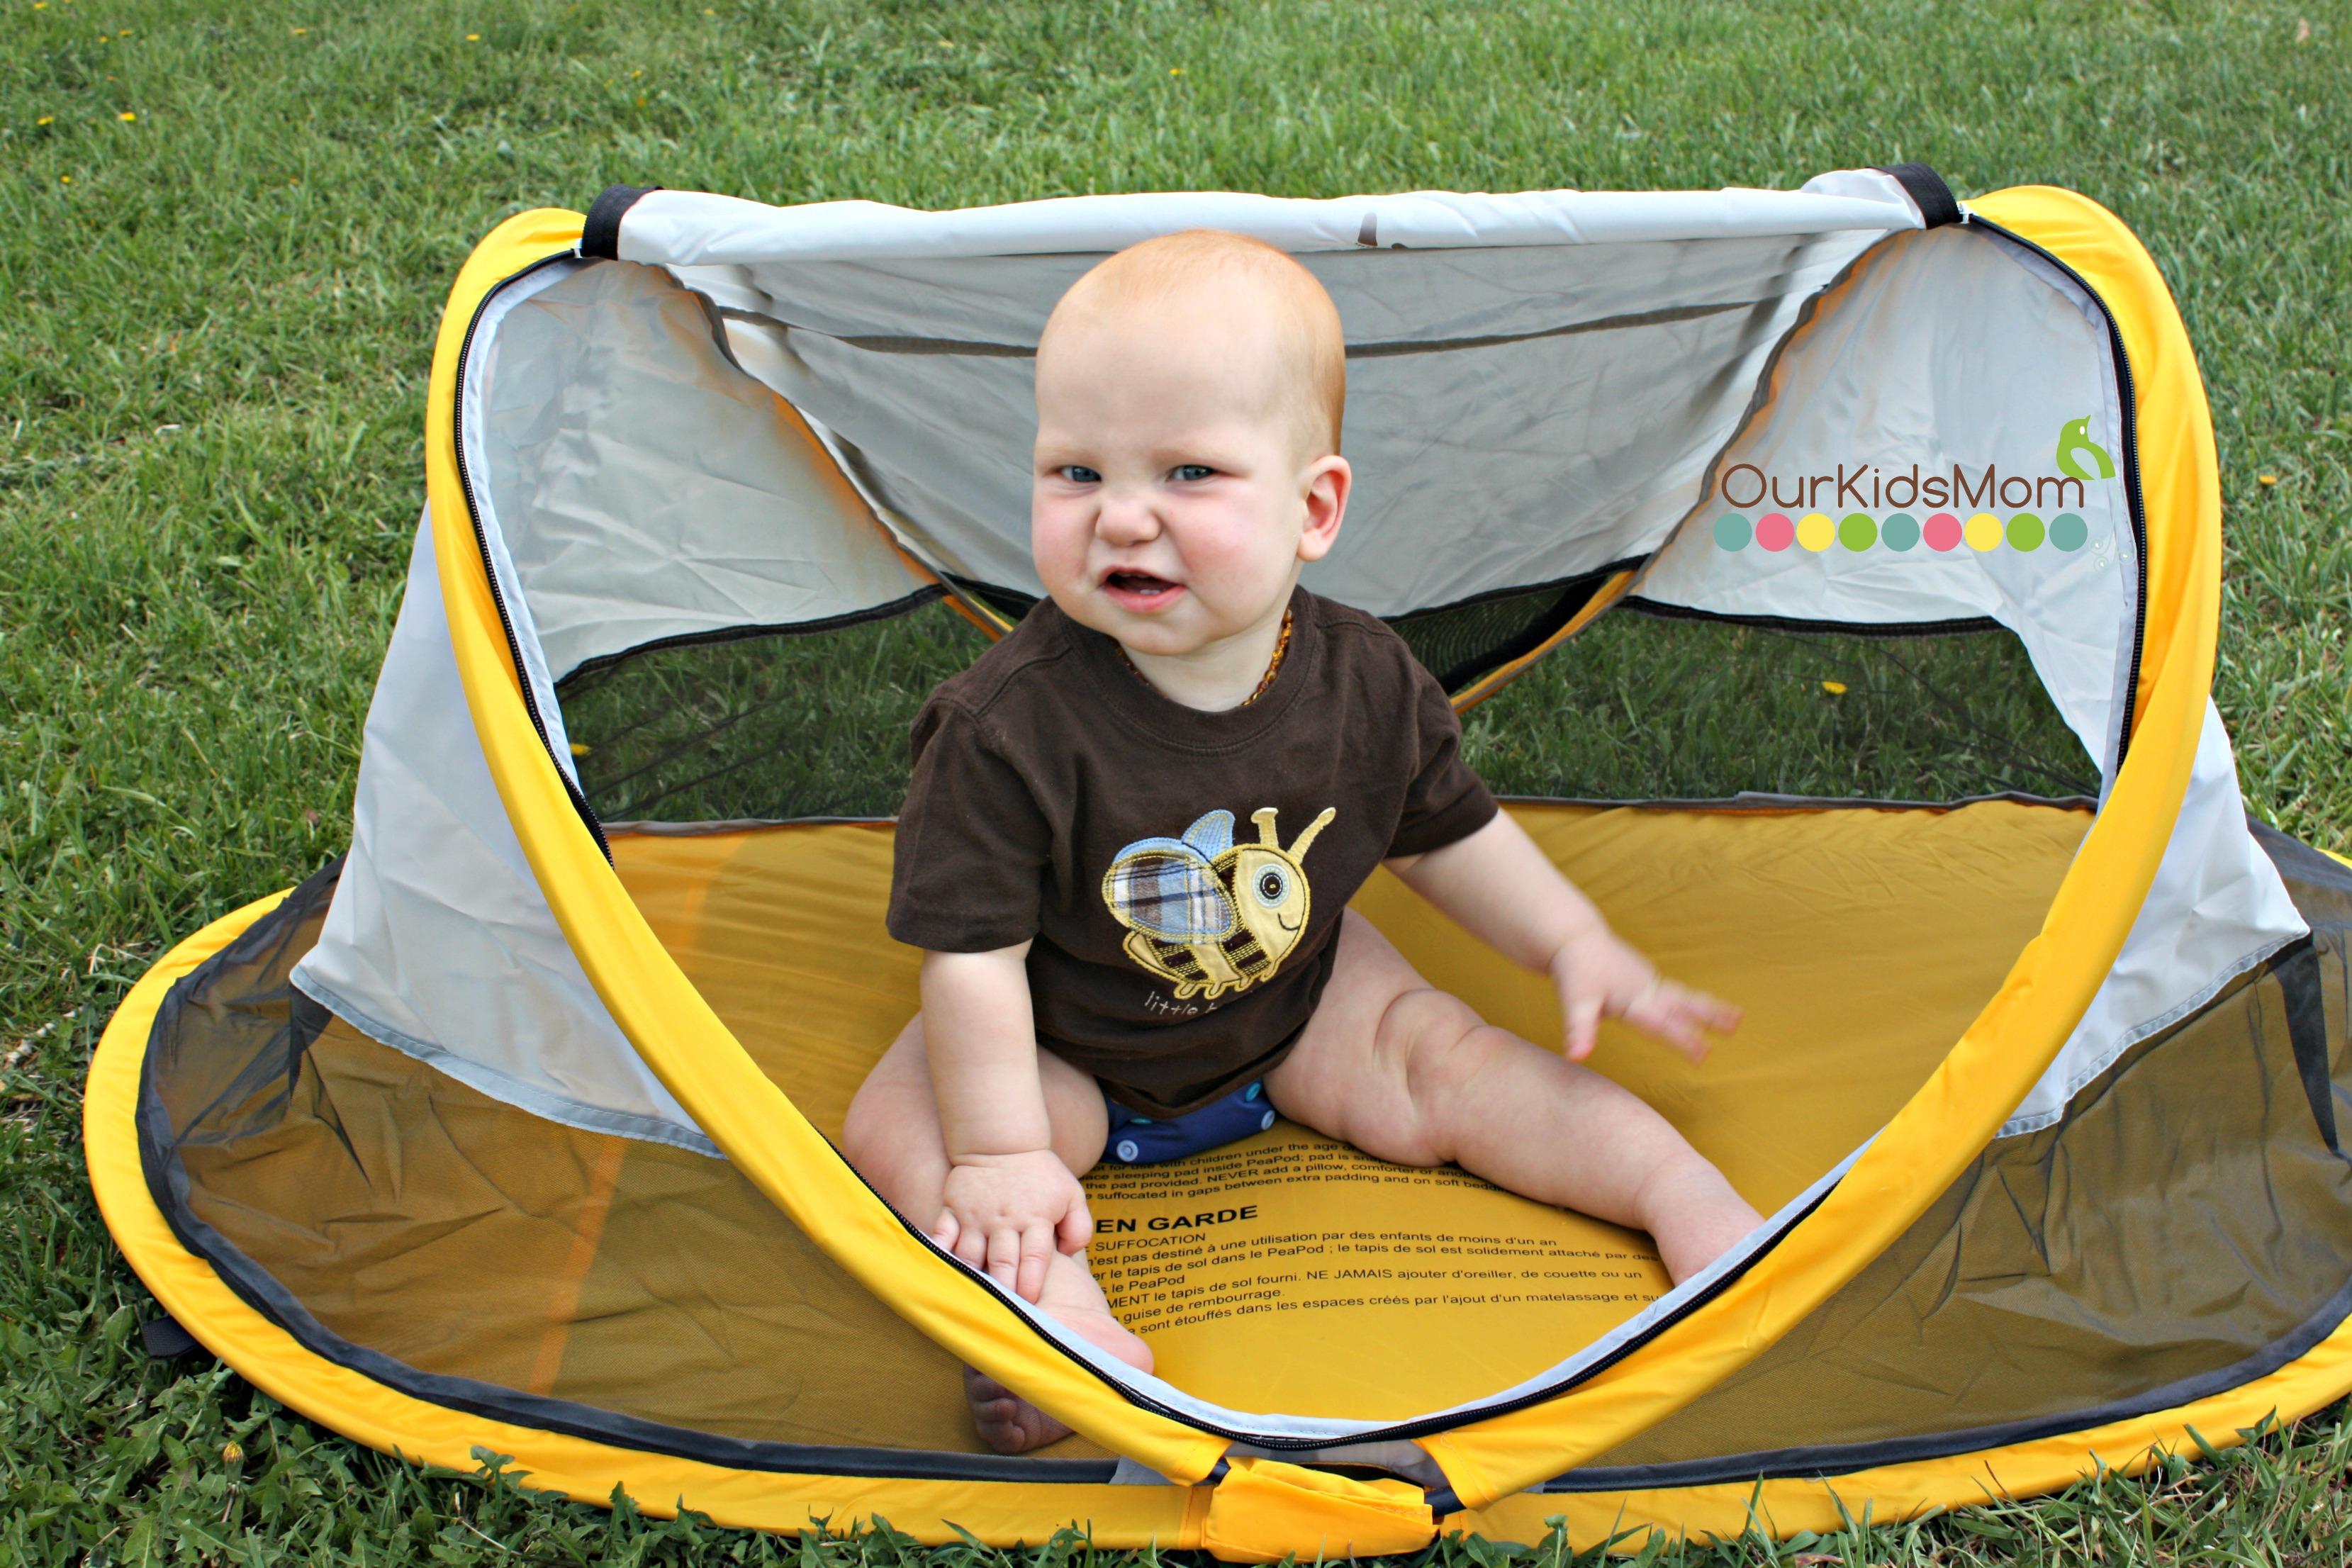 Using the tent outside